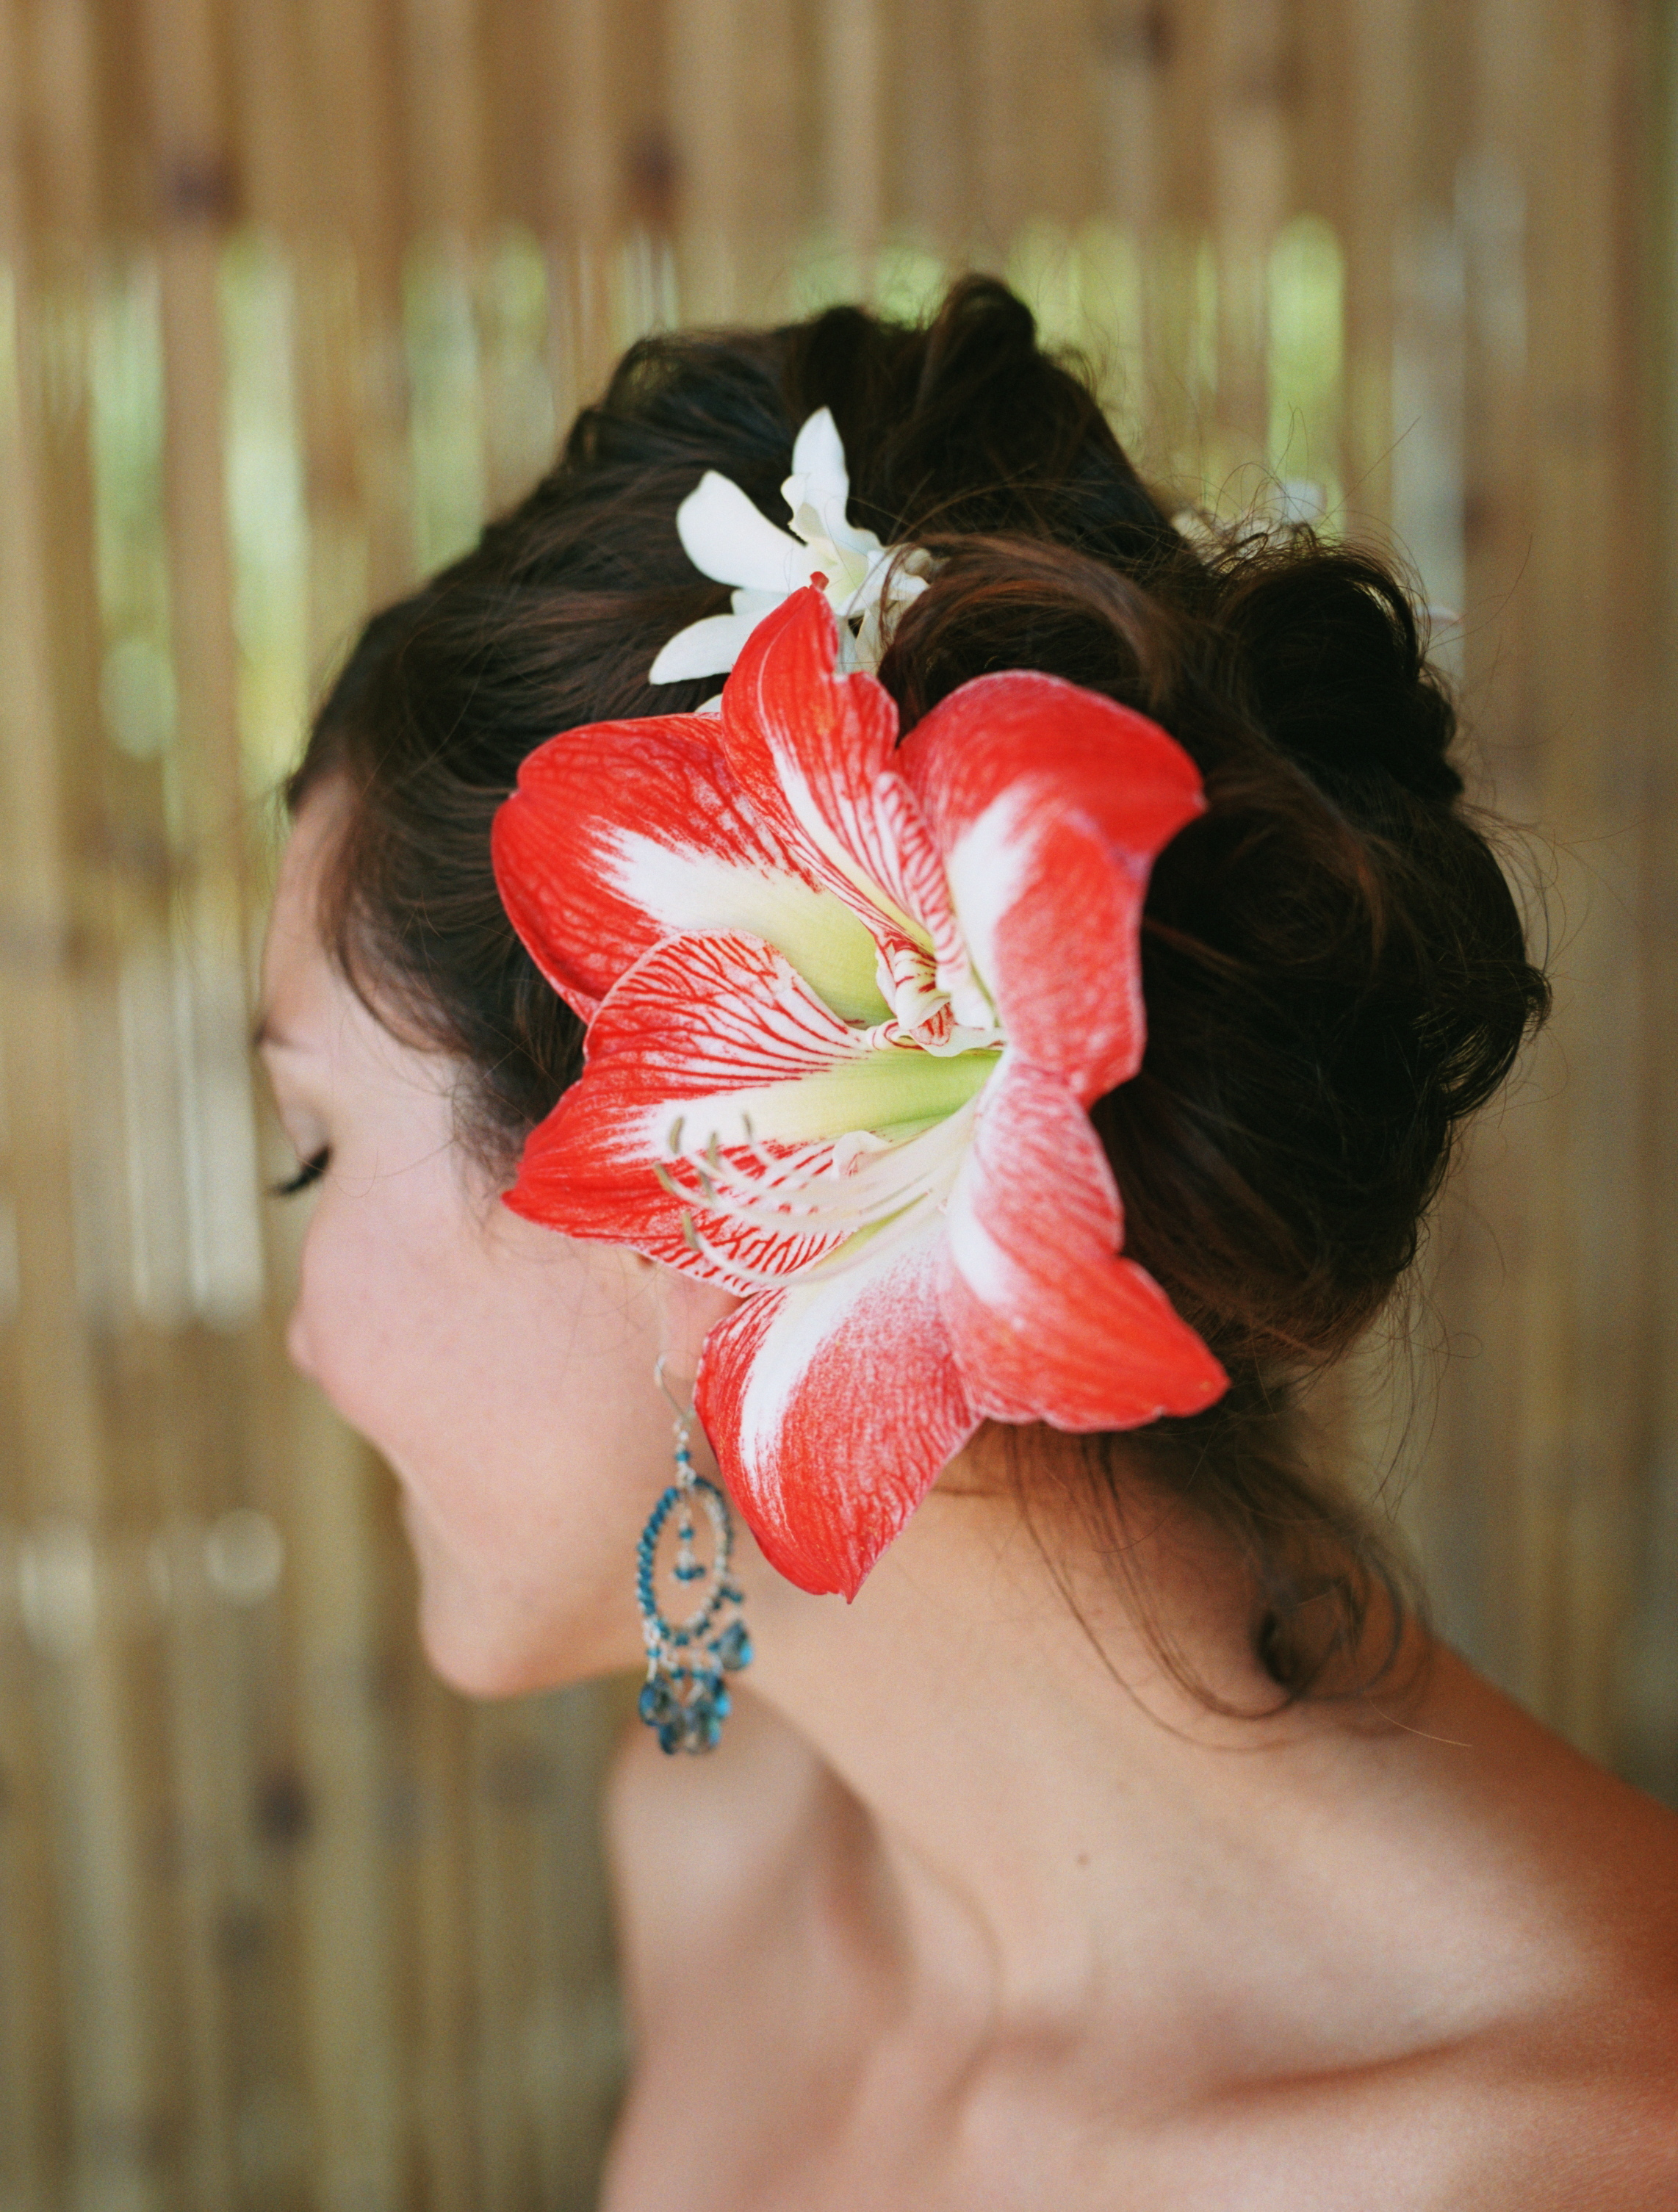 Destinations, orange, blue, Destination Weddings, Hawaii, Beach, Wedding, Colorful, Destination wedding, Hawaiian wedding, Kuaui, Flower in hair